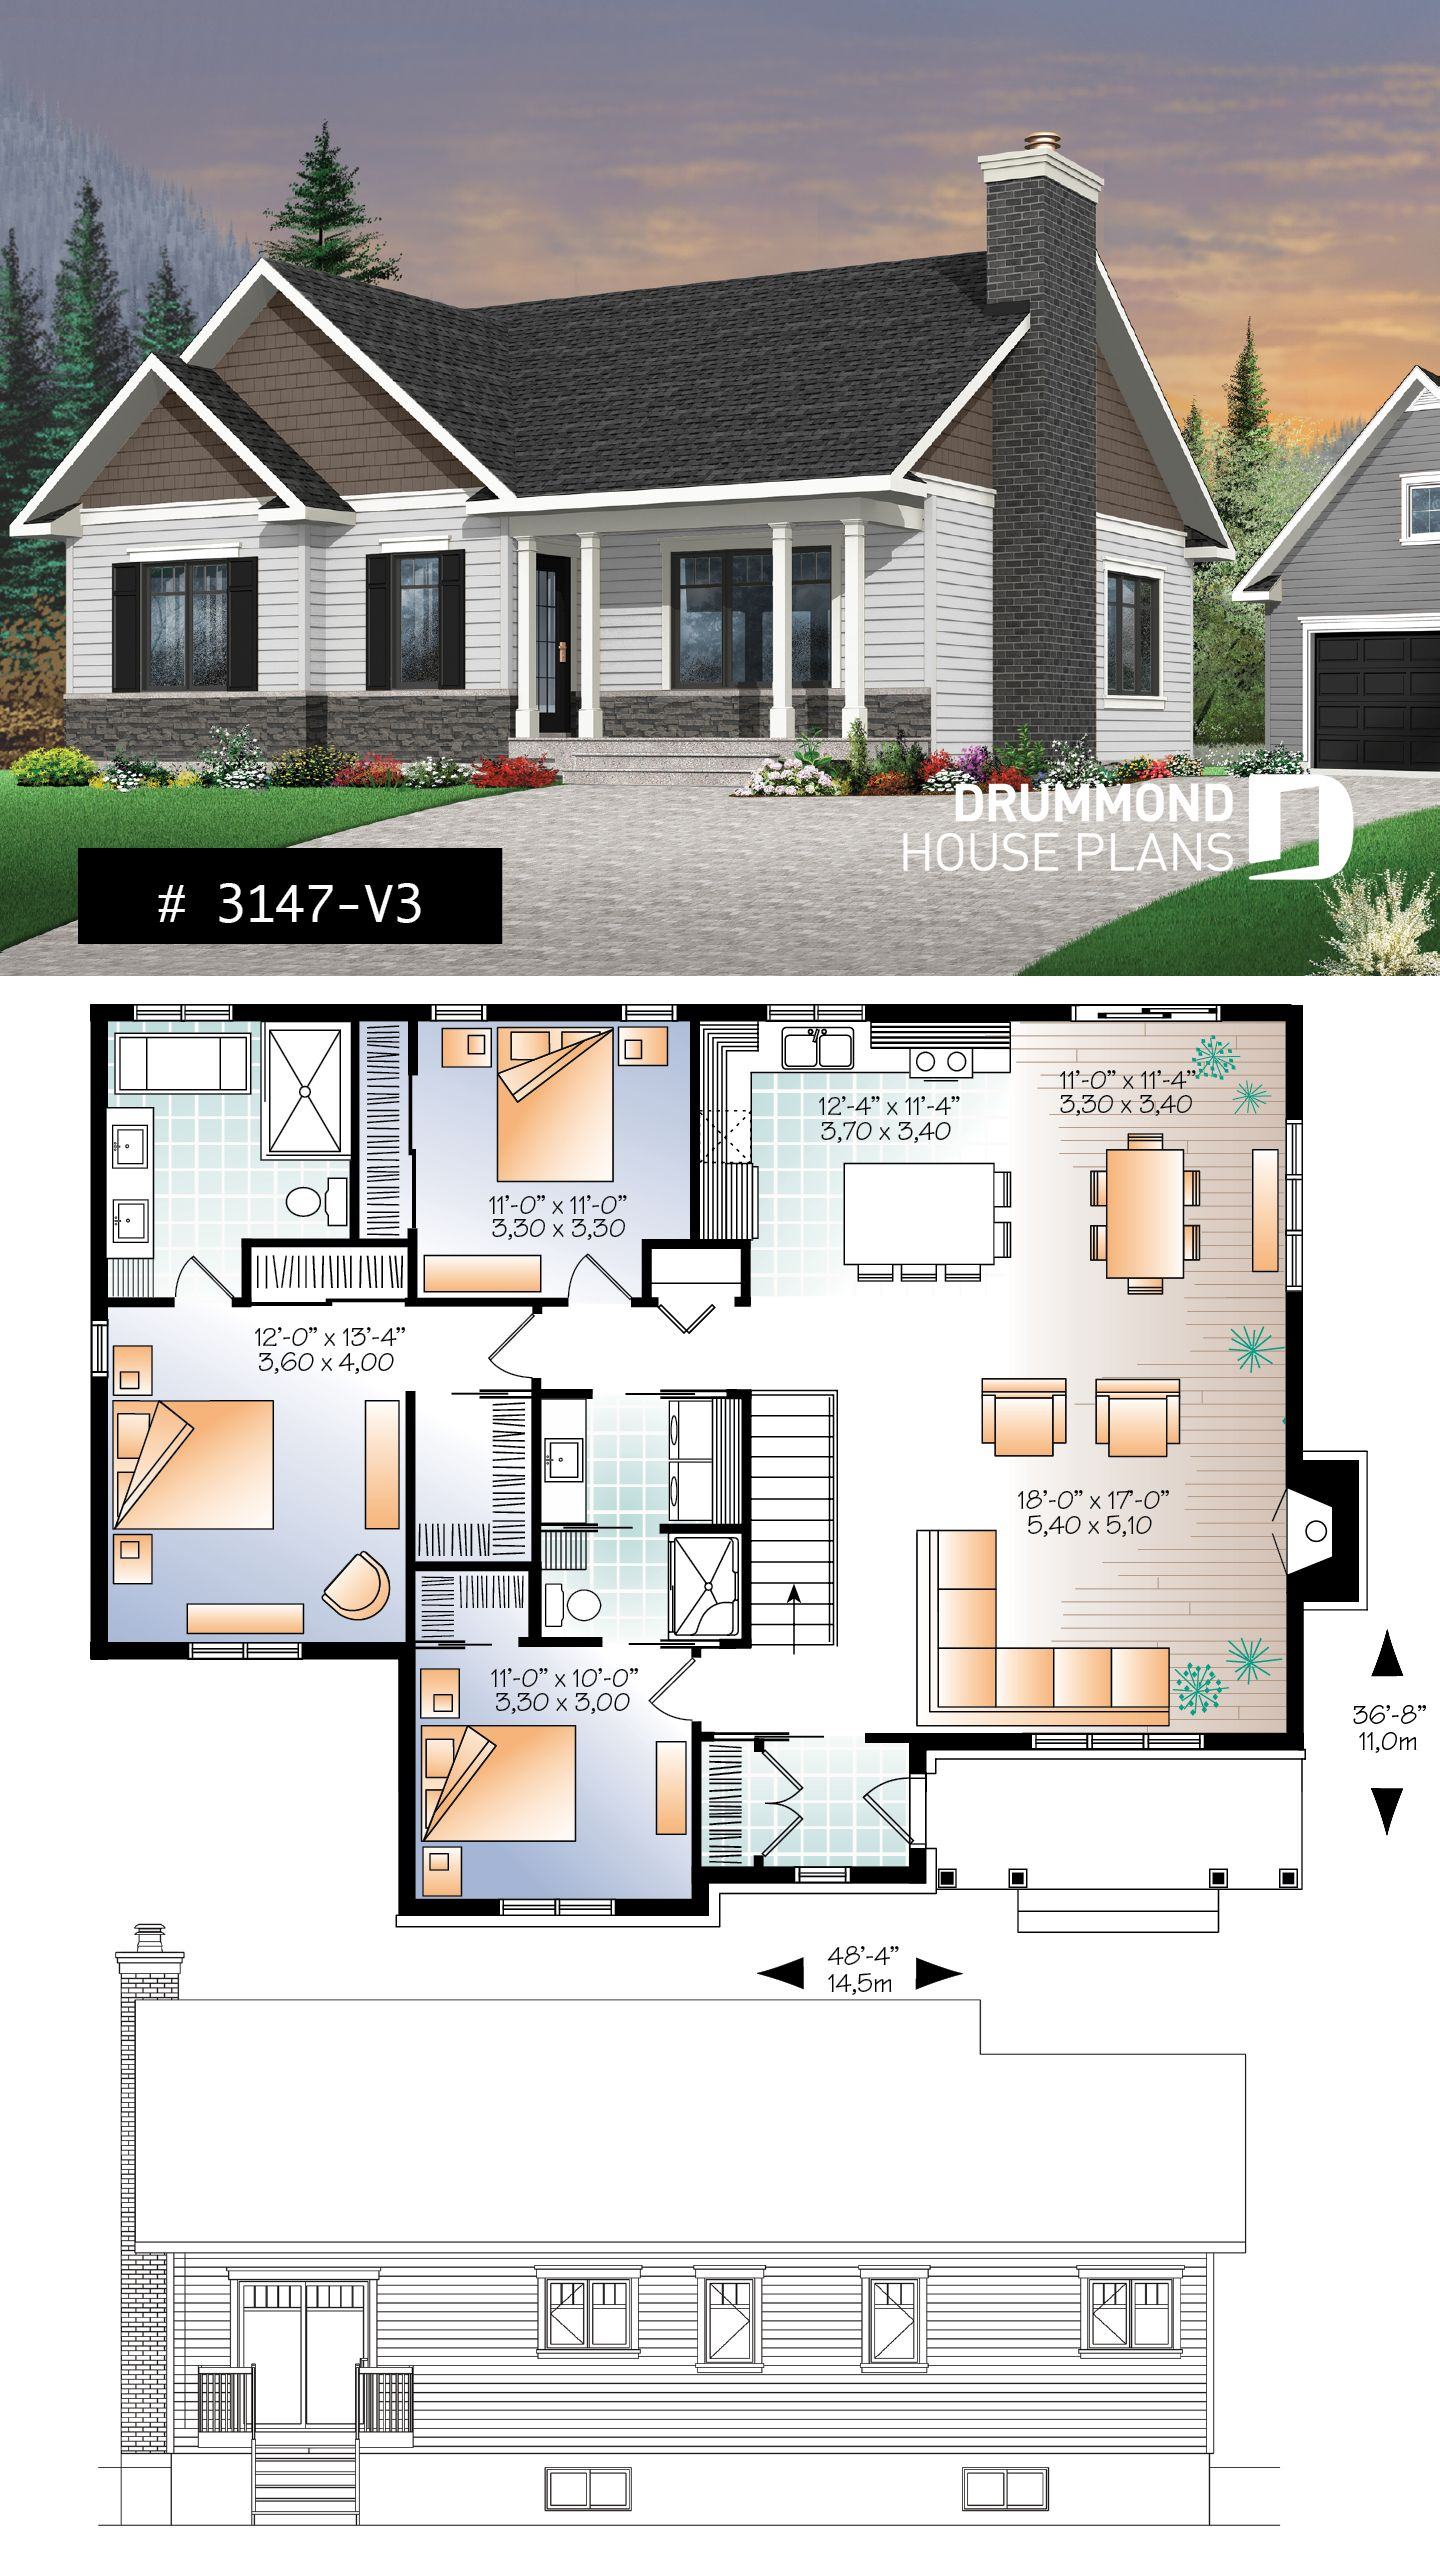 Discover The Plan 3147 V3 Bradley 3 Which Will Please You For Its 3 Bedrooms And For Its Rustic Styles Bungalow House Plans New House Plans Barn House Plans